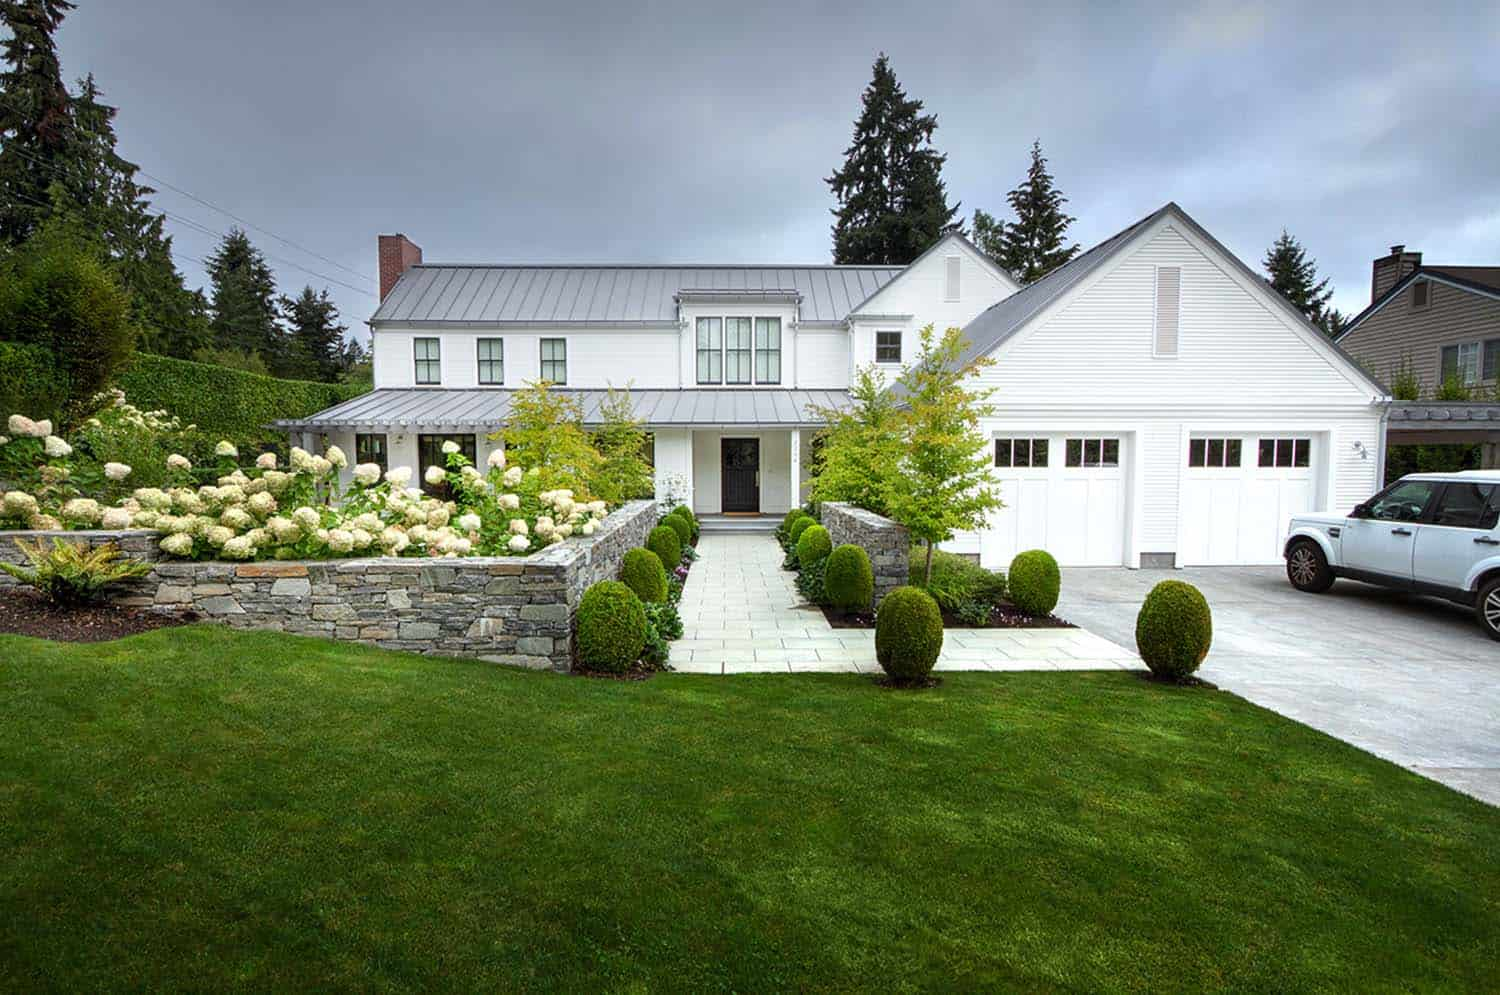 A gorgeous modern farmhouse style home in Washington